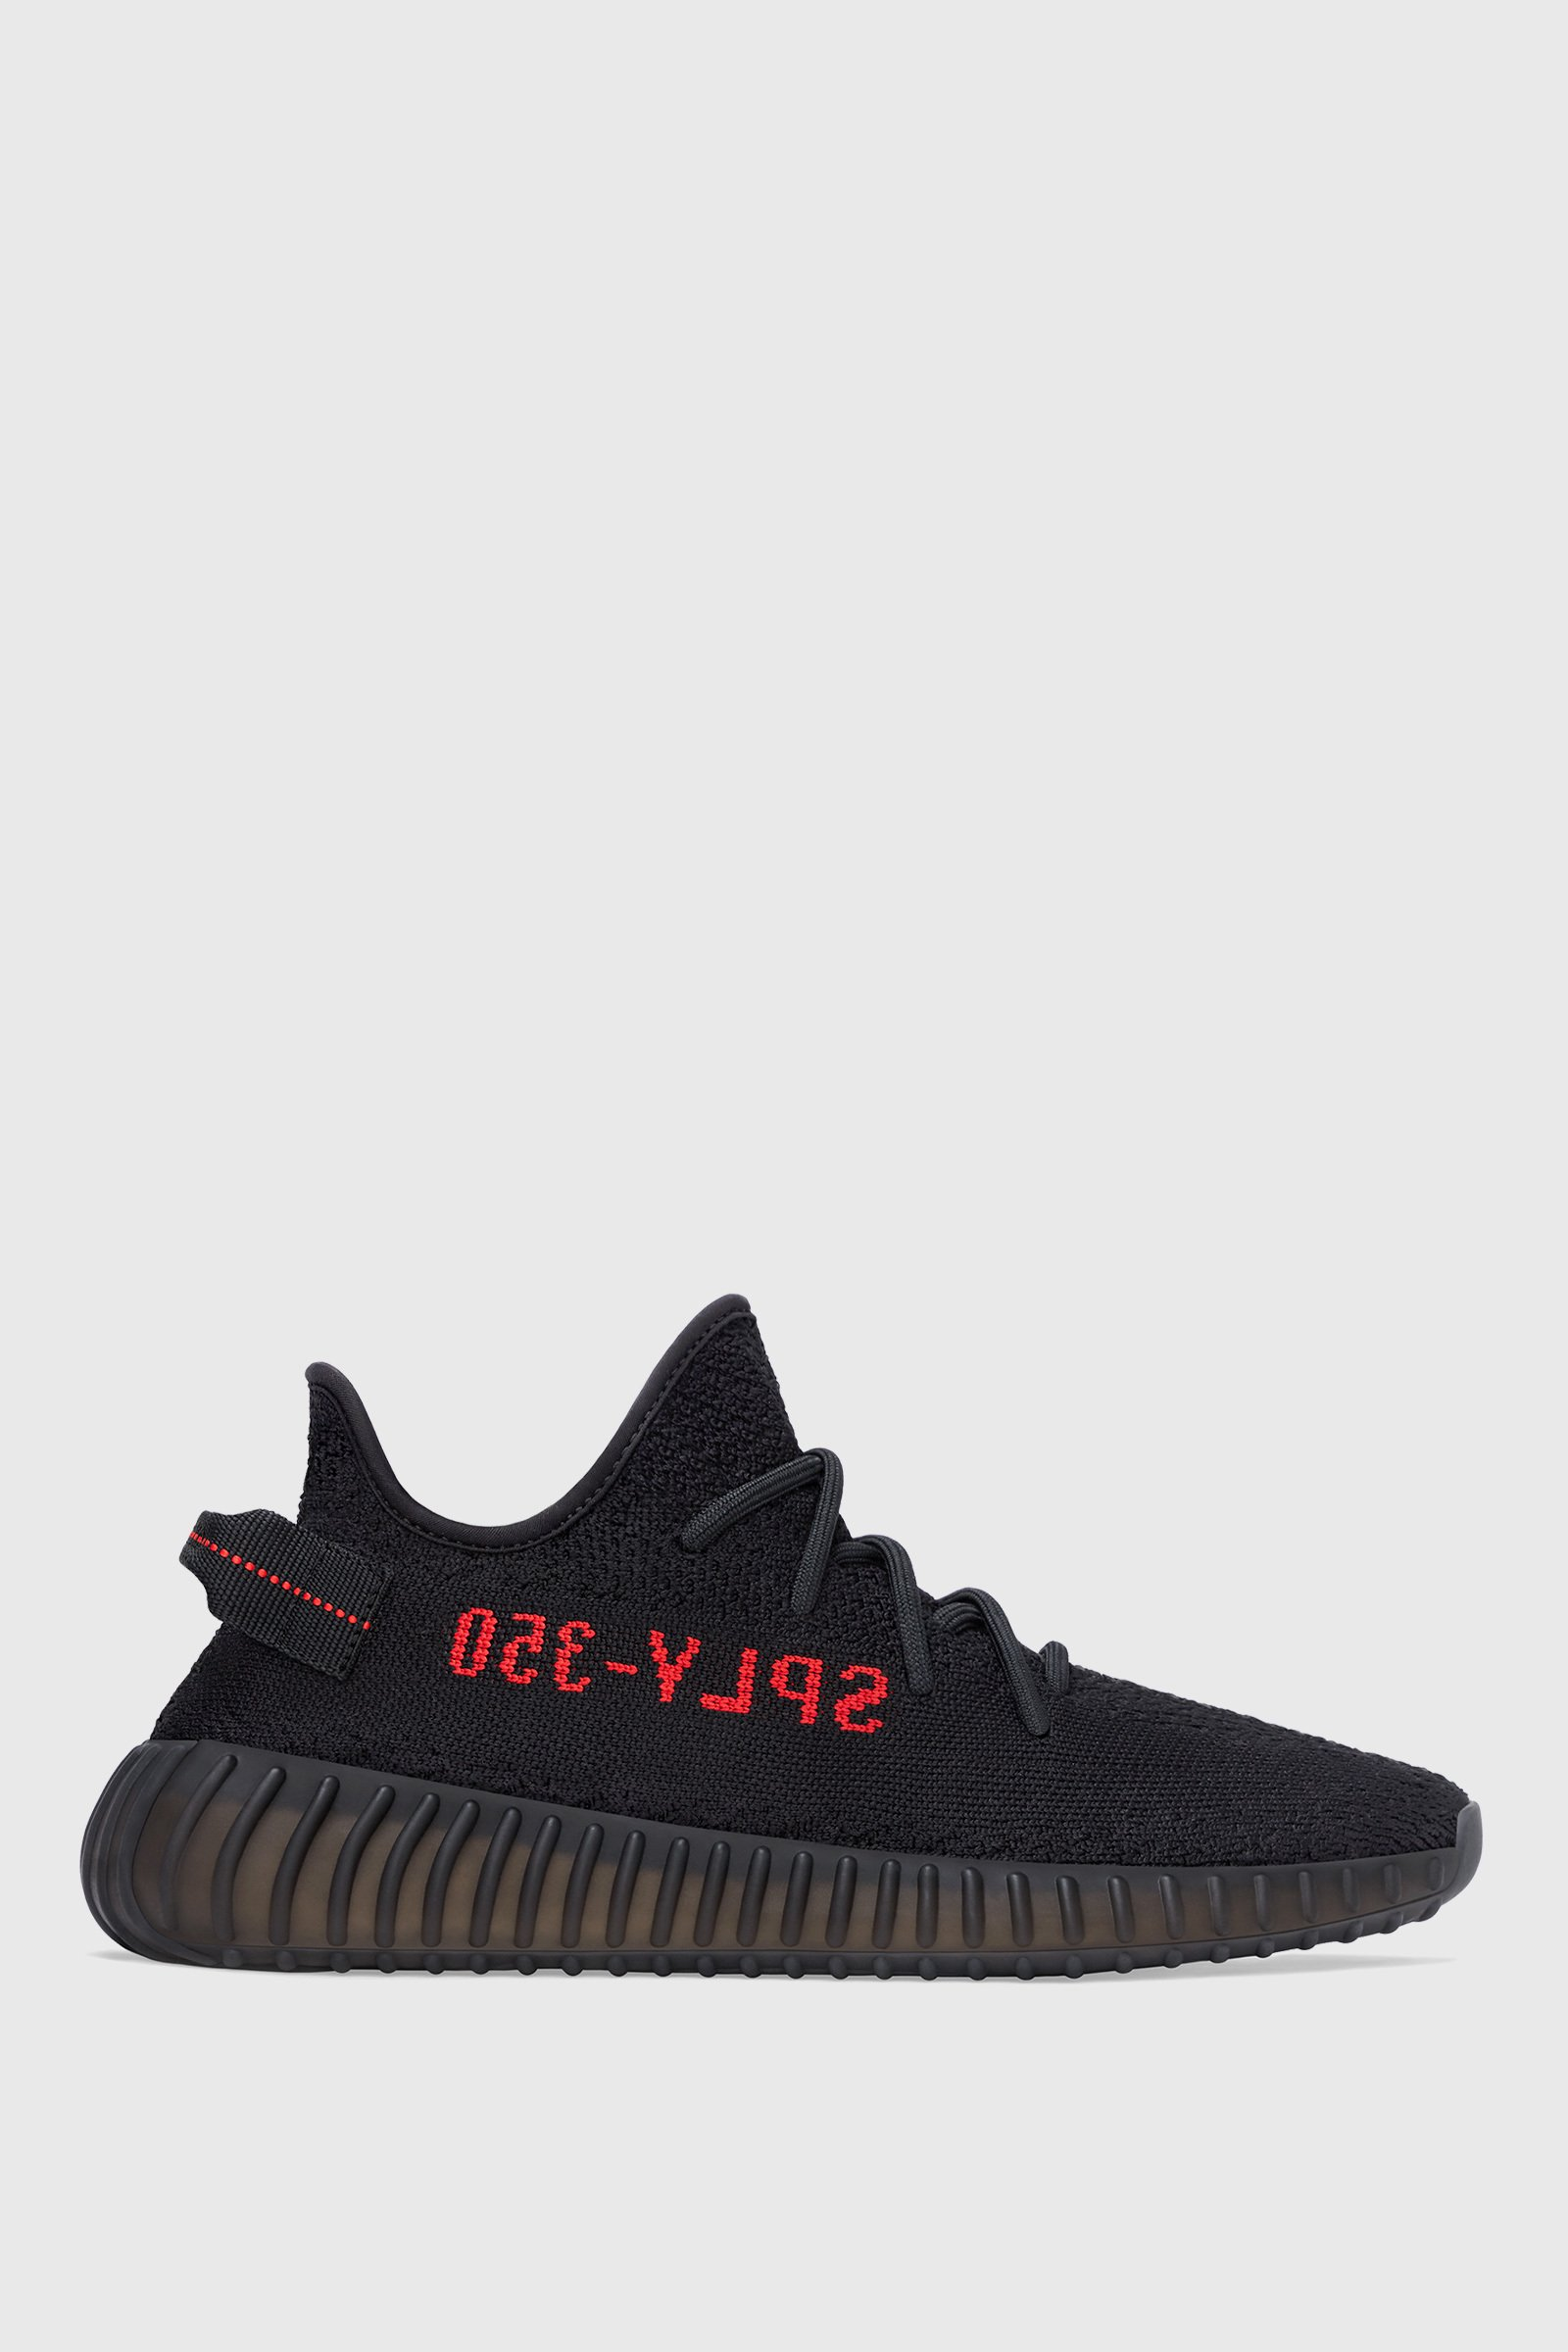 yeezy boost 350 black and white